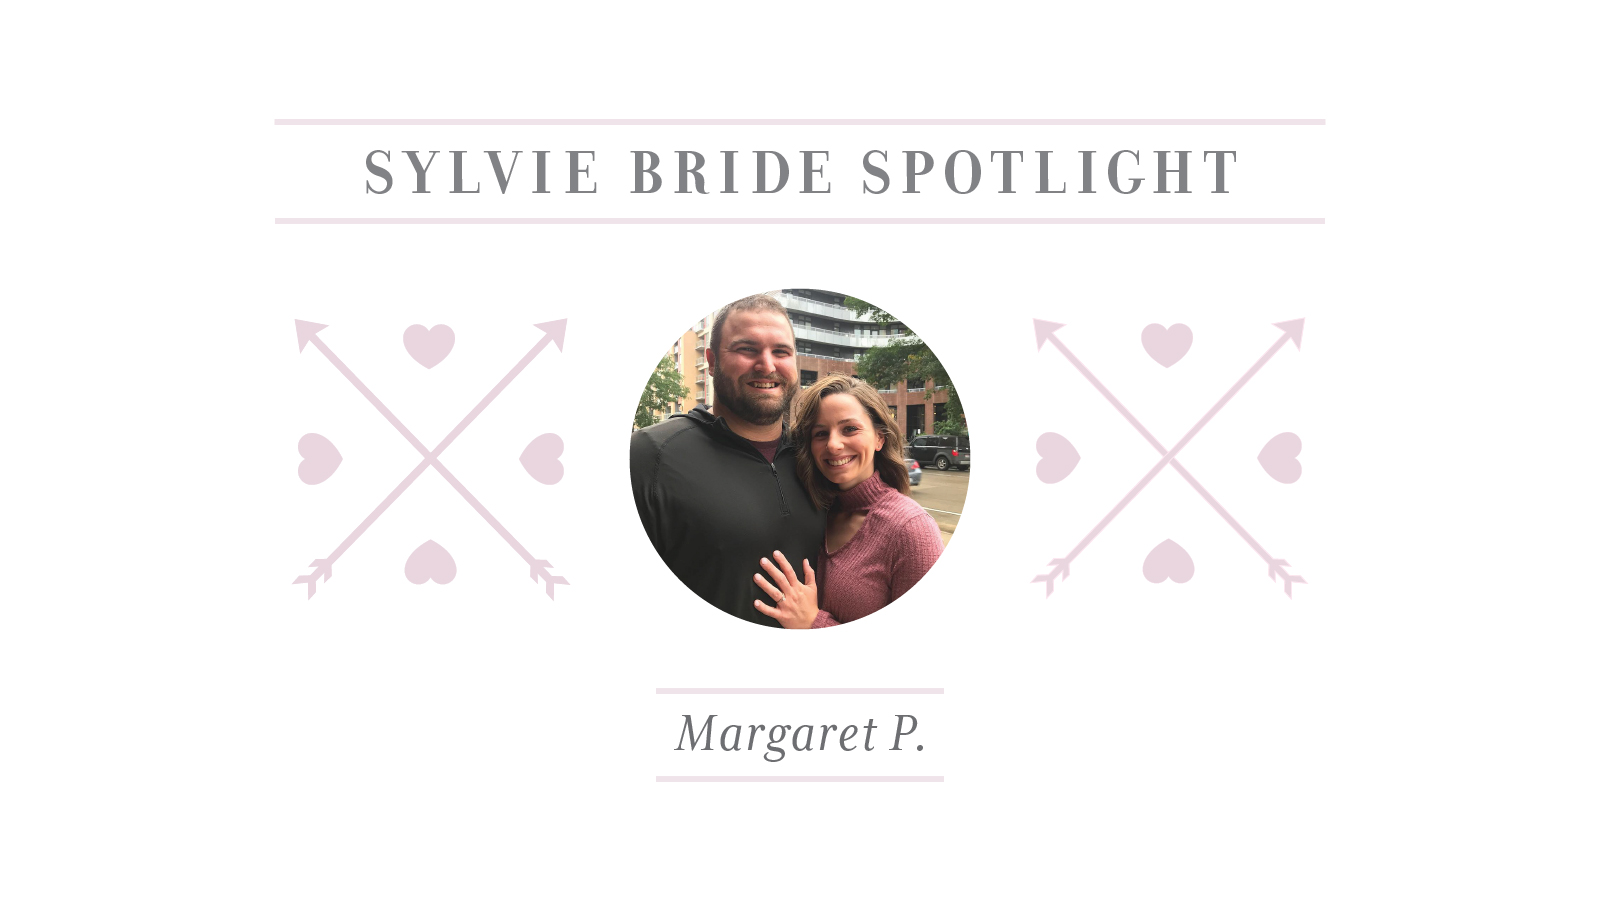 Sylvie Bride Spotlight - MargaretP